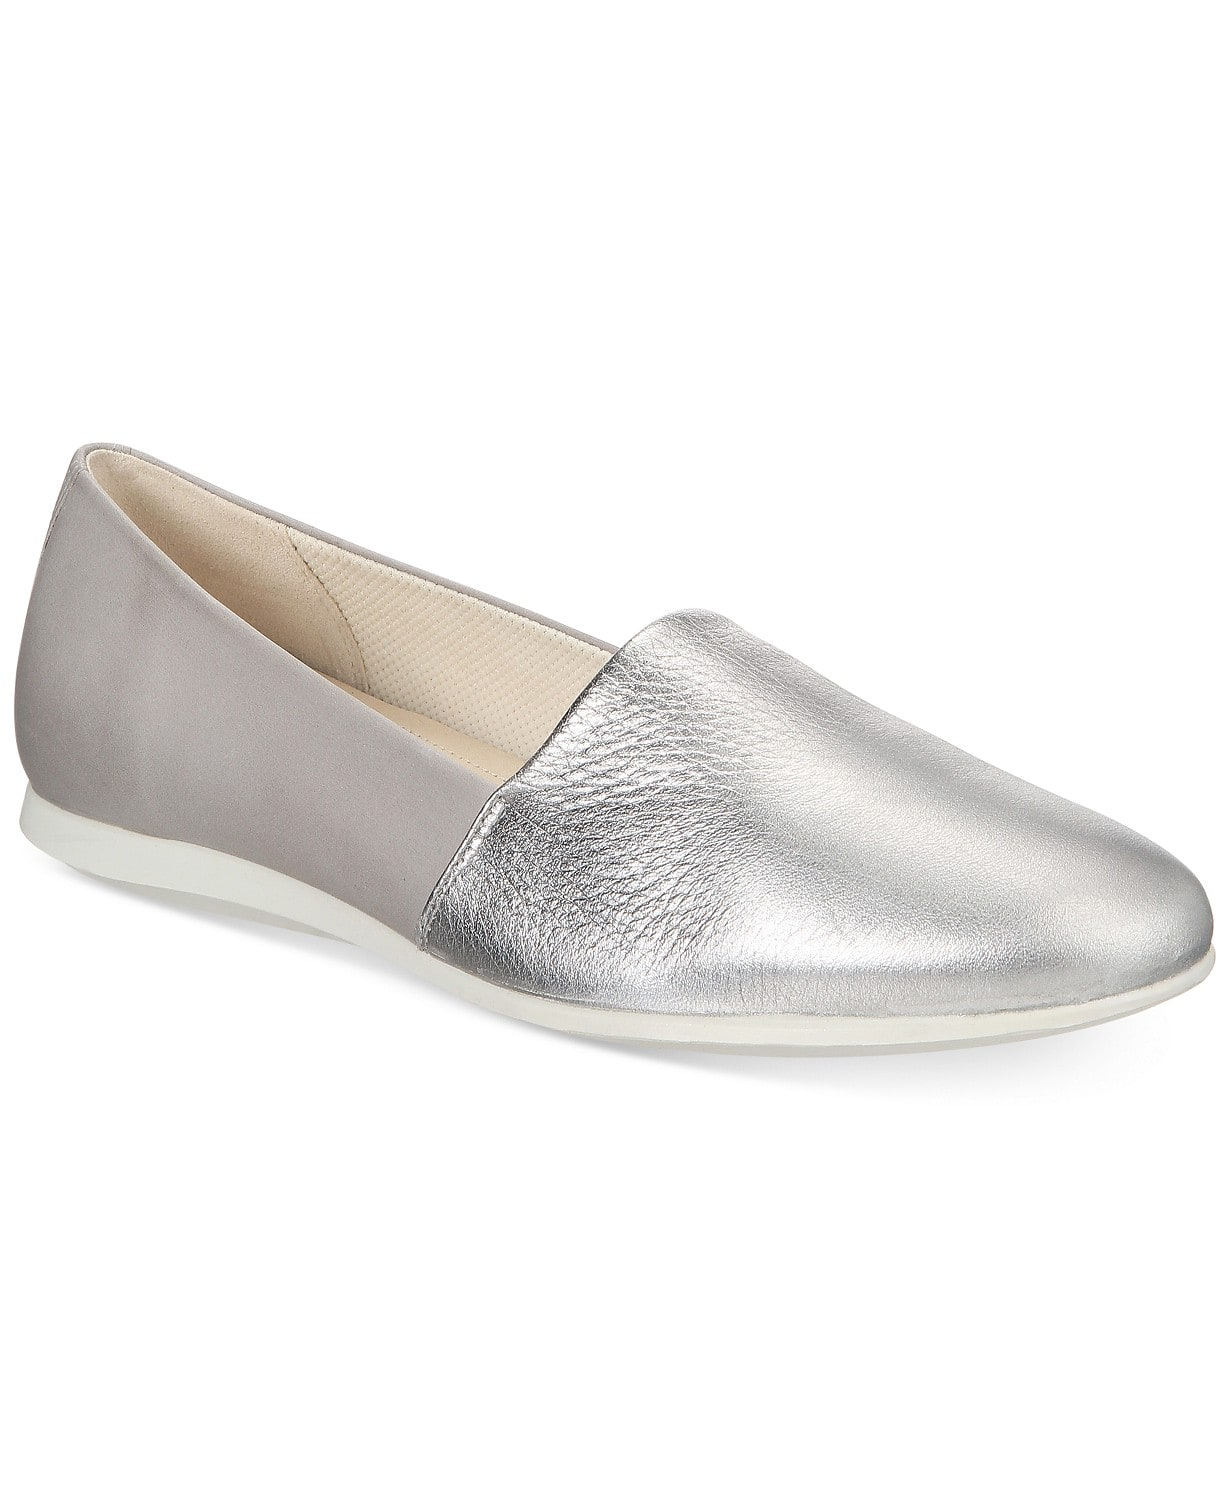 65d2484548ec4 Ecco Touch Ballerina 2.0 Slip-On Flats 54.93 (50% off) Free Shipping at Macy  $54.93